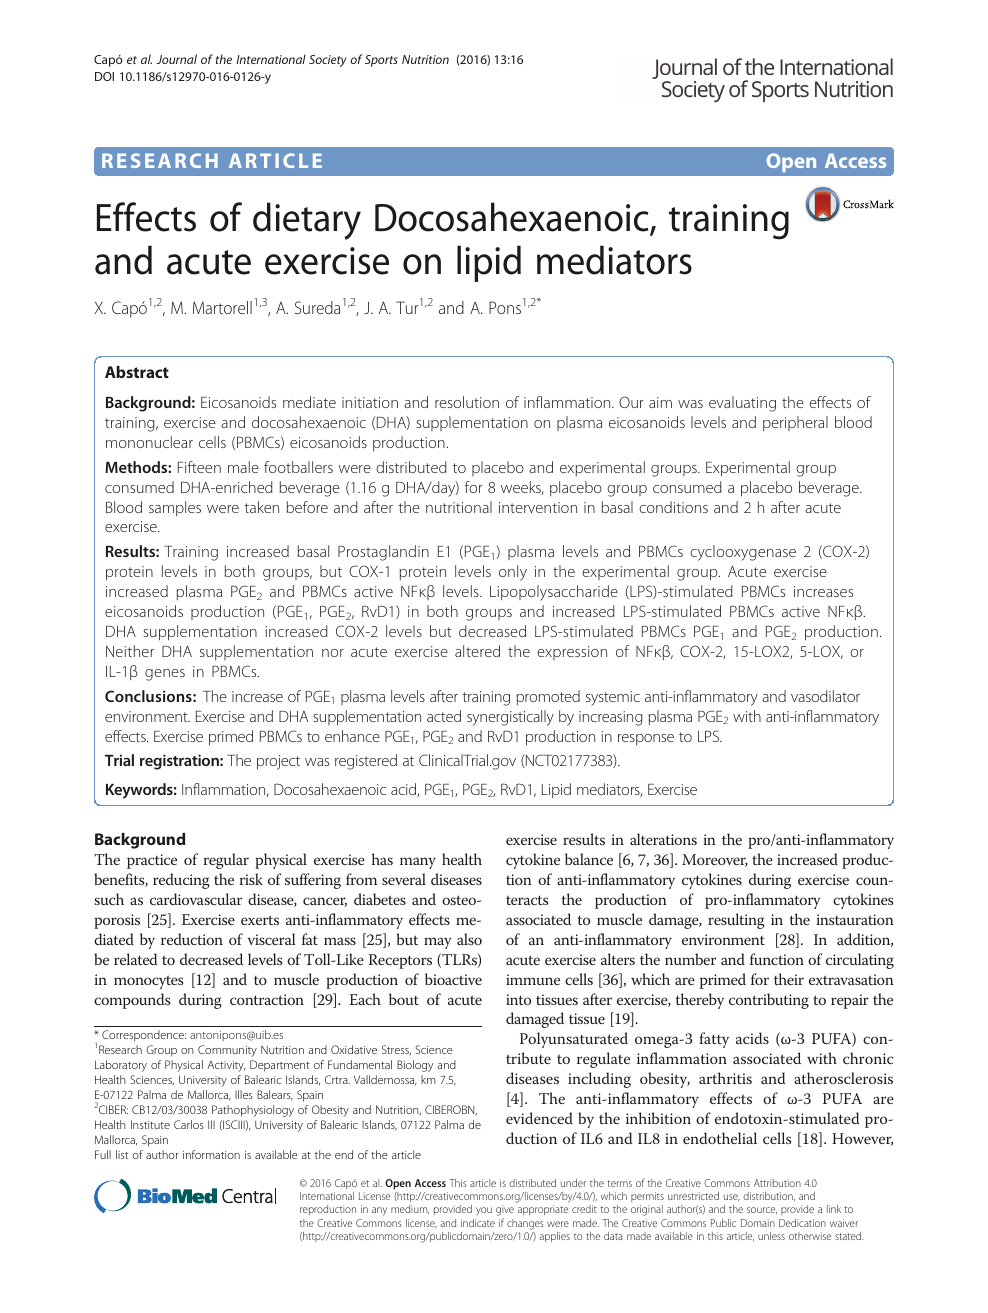 Effects of dietary Docosahexaenoic, training and acute